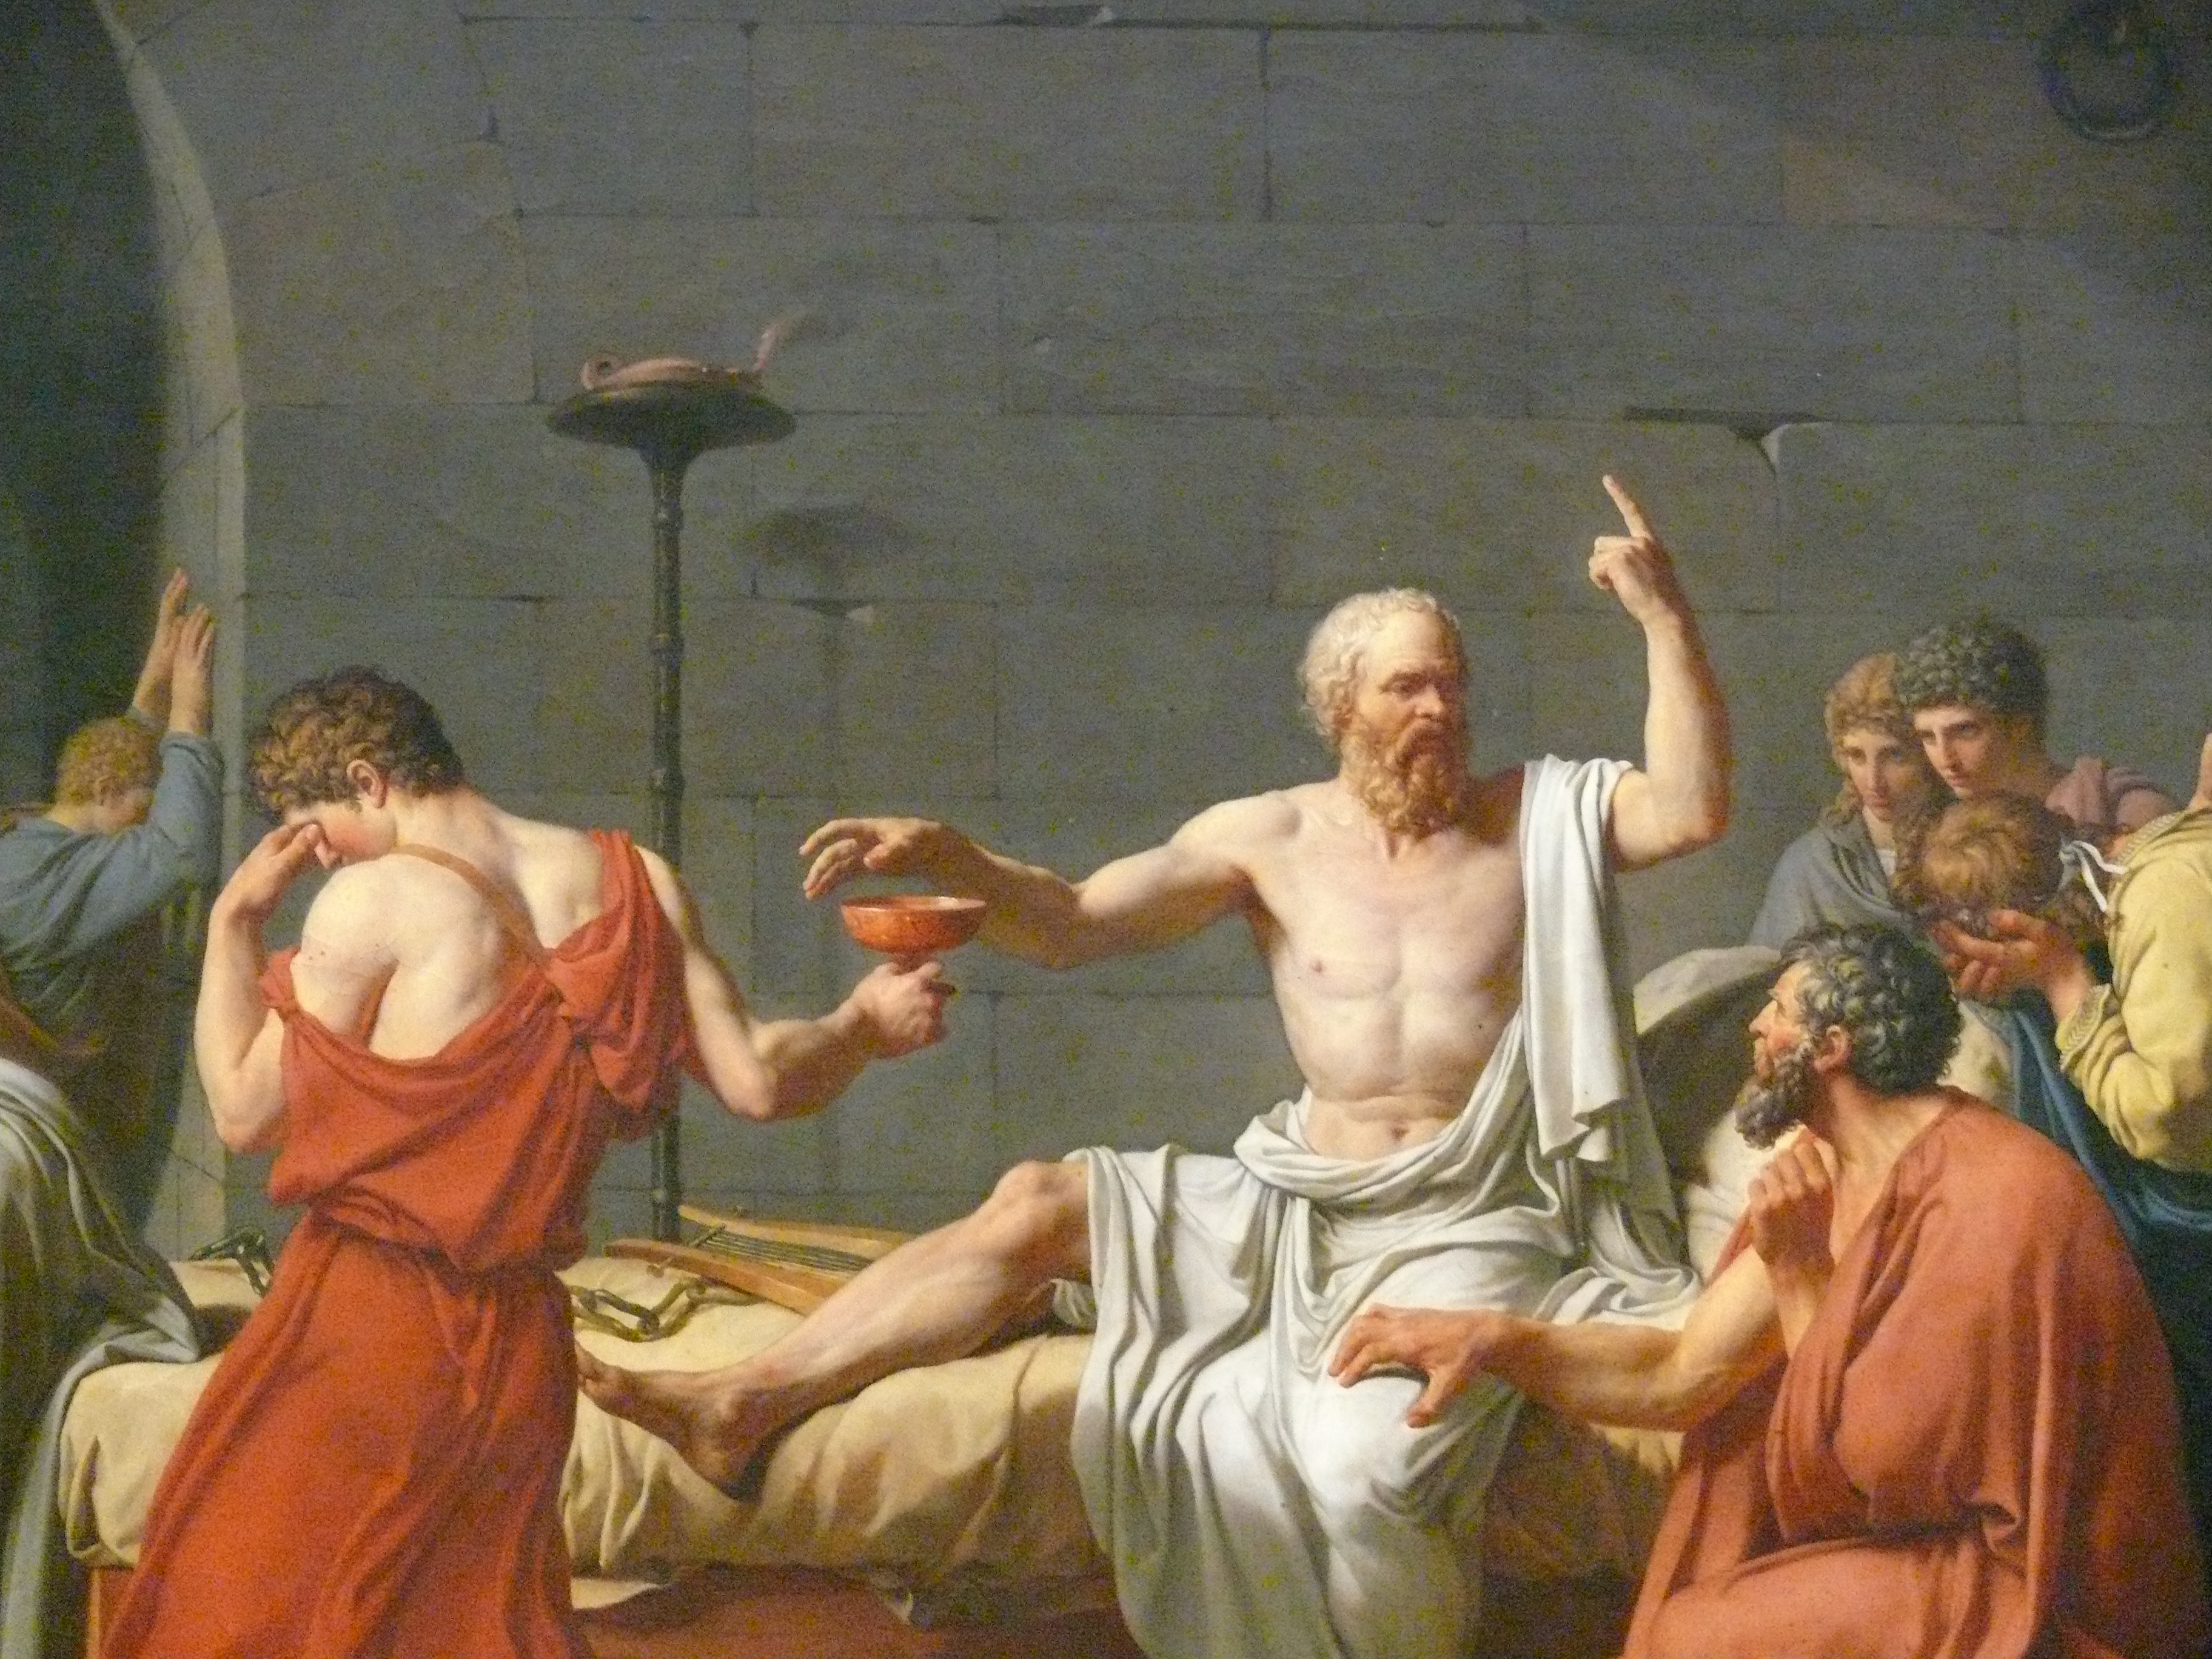 thrasymachus philosophy paper But philosophy is also reflectively concerned with the methods its practitioners employ in the effort thus, philosophy must be regarded both as content and as activity: it considers alternative views of.